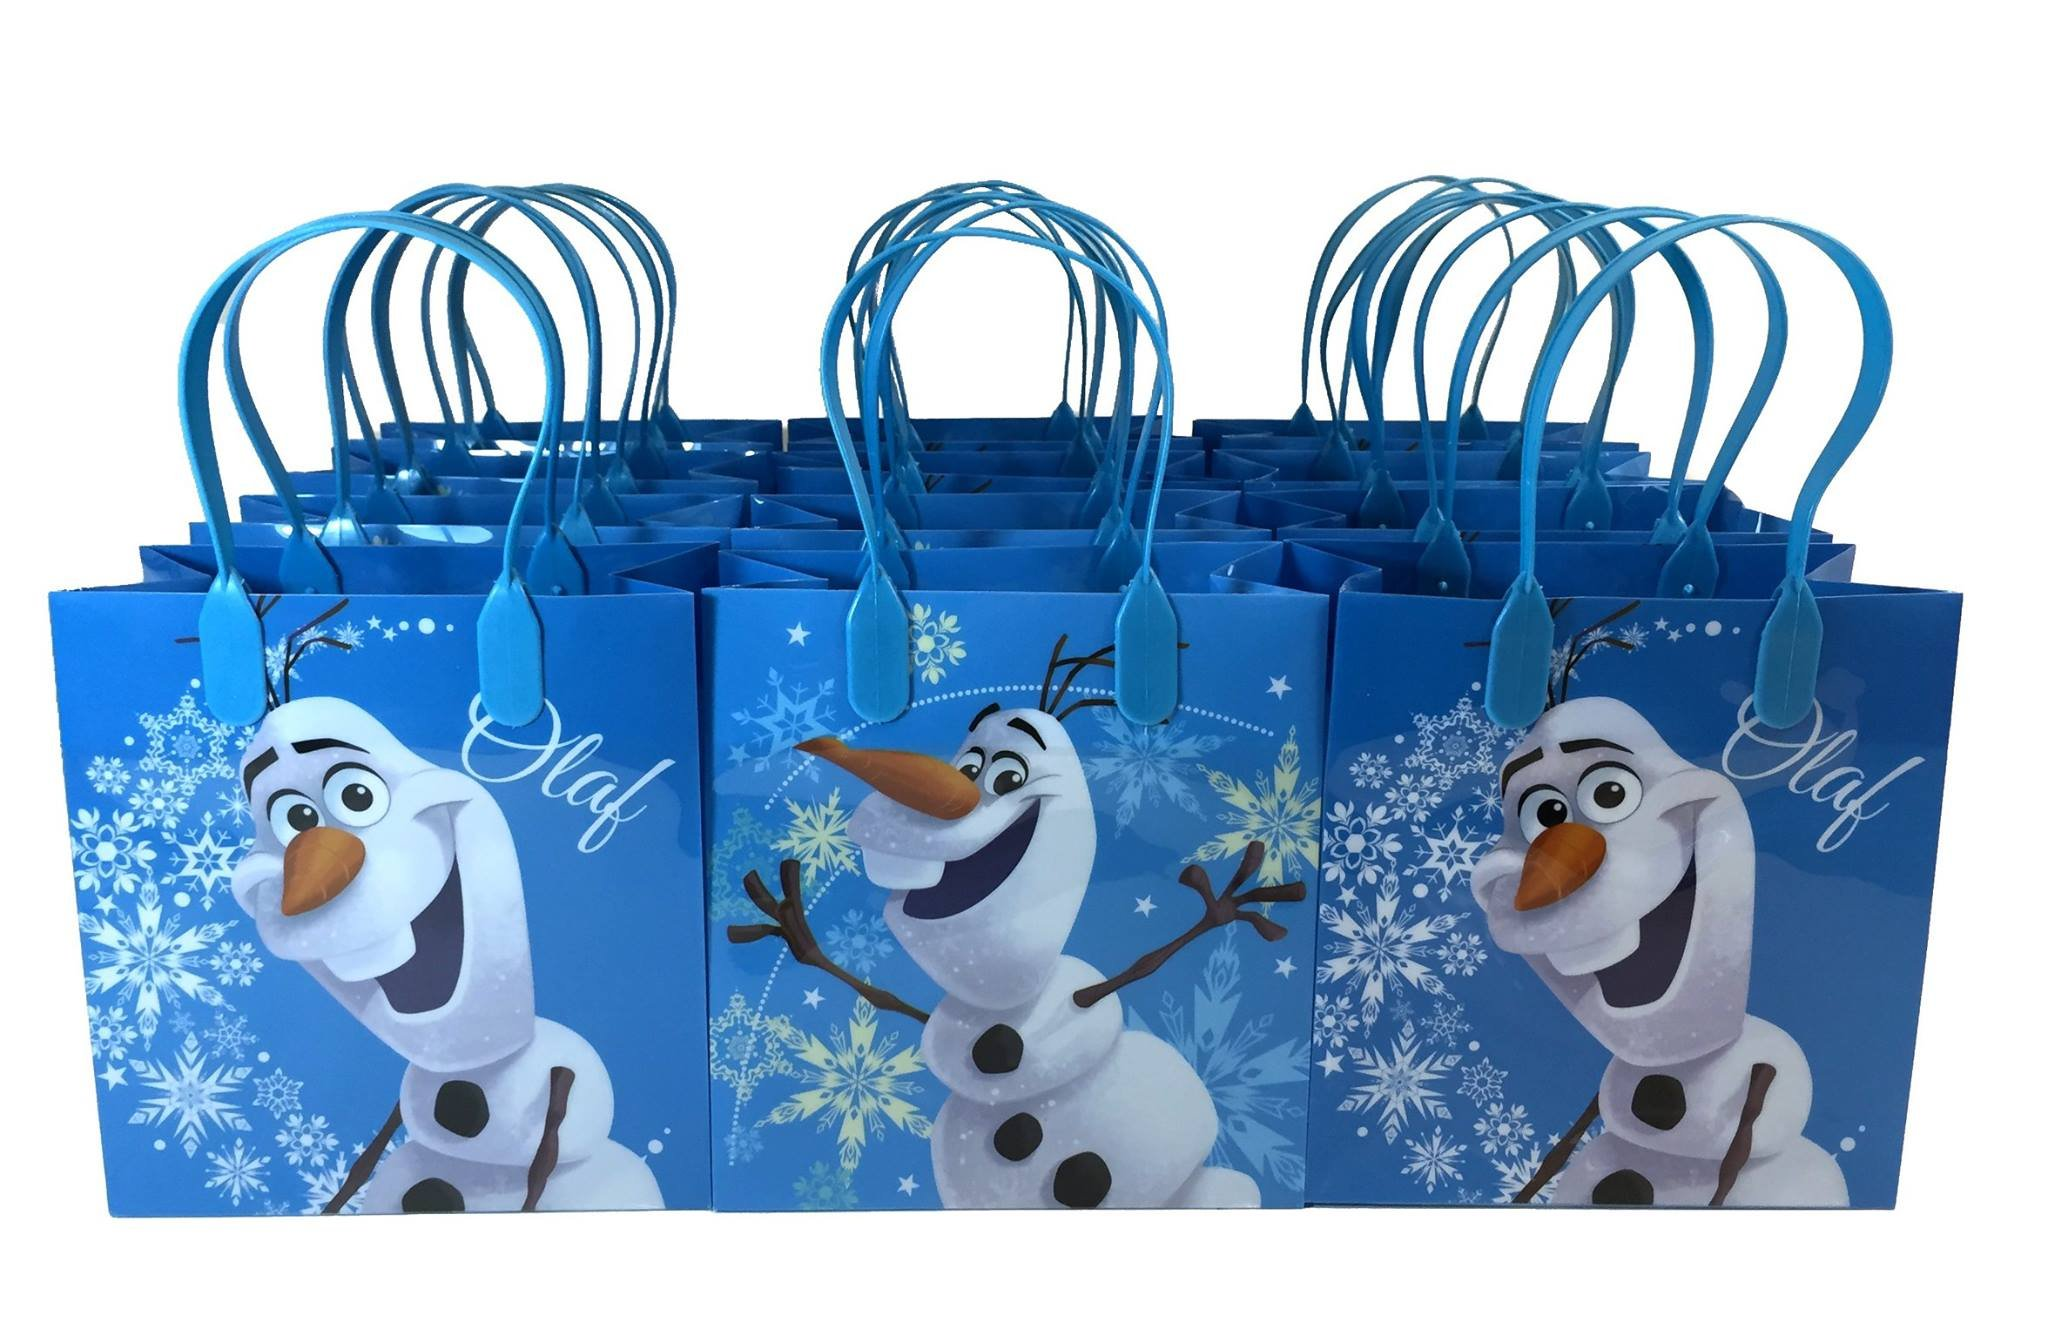 Disney Frozen Olaf Blue Premium Quality Party Favor Reusable Goodie Small Gift Bags 12 (12 Bags) by Disney